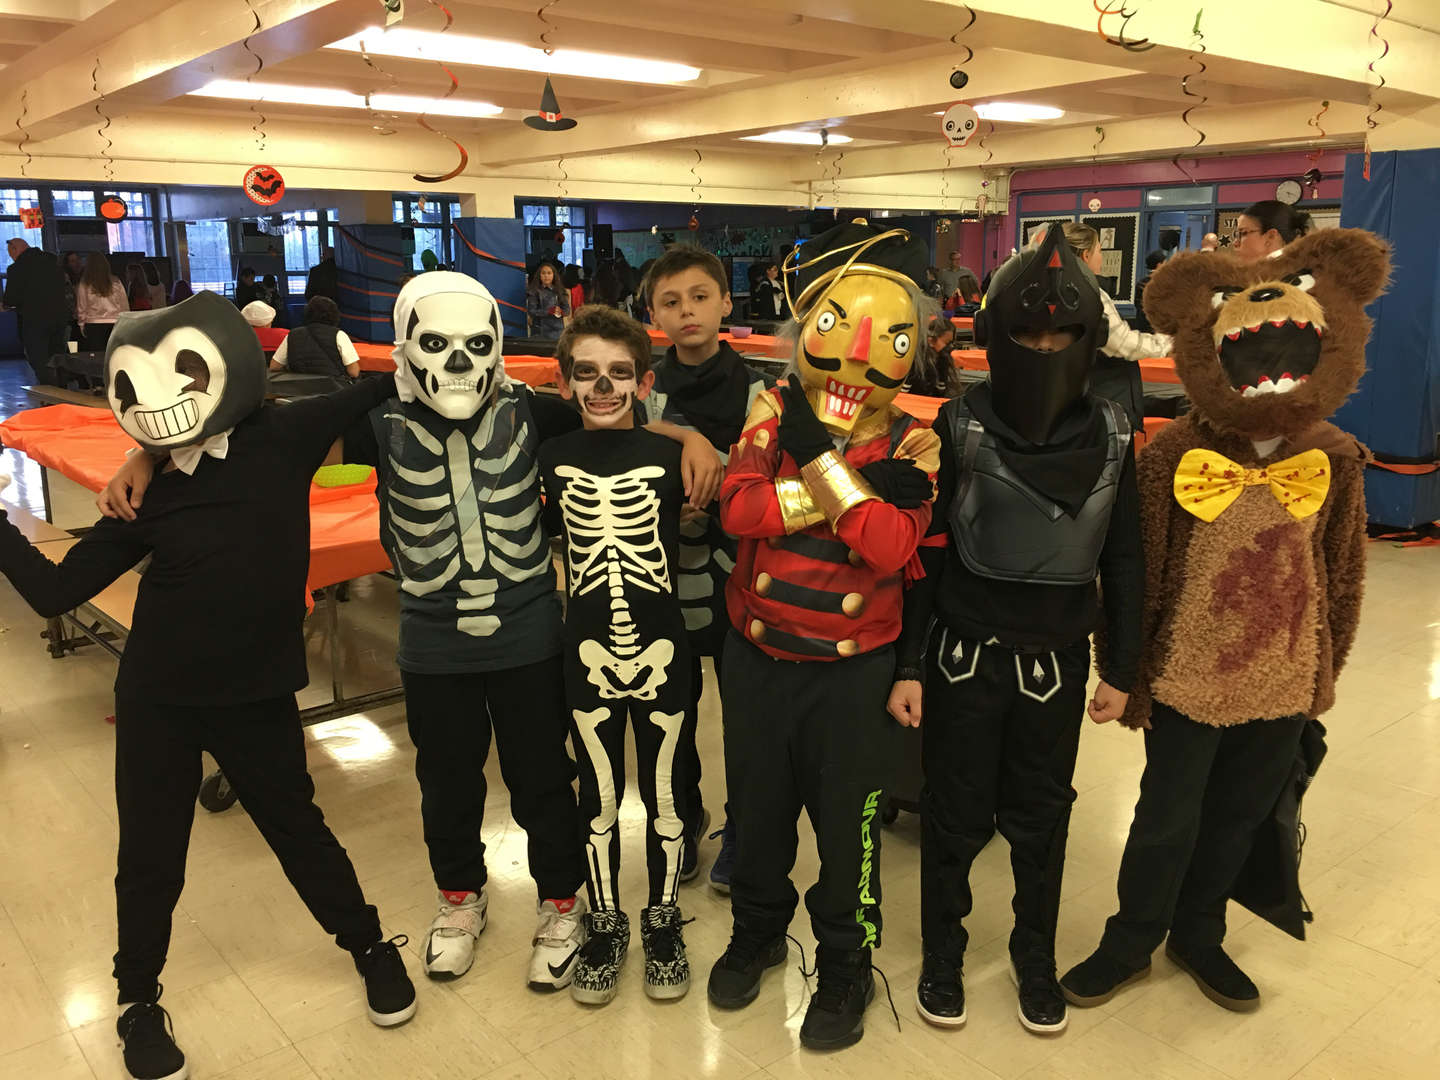 a group in costume looking good!